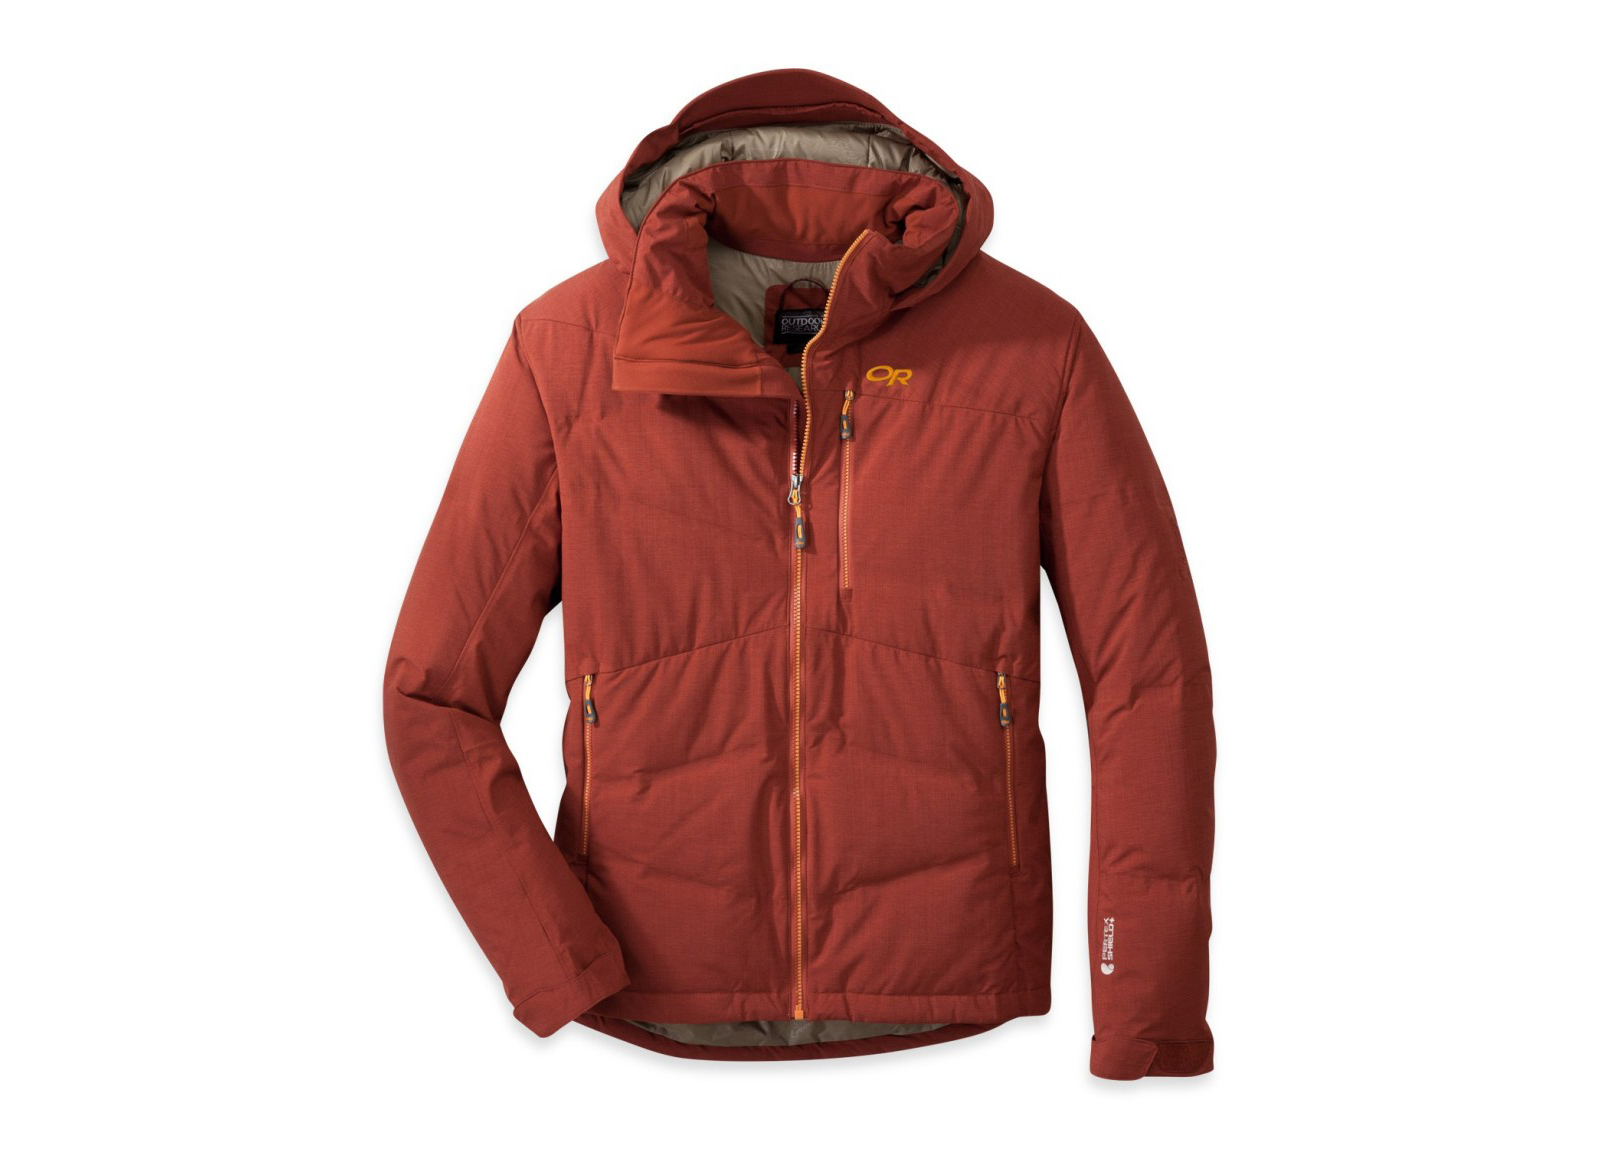 42ca7395ca4 Outdoor Research Stormbound Ski Jacket  First Impressions